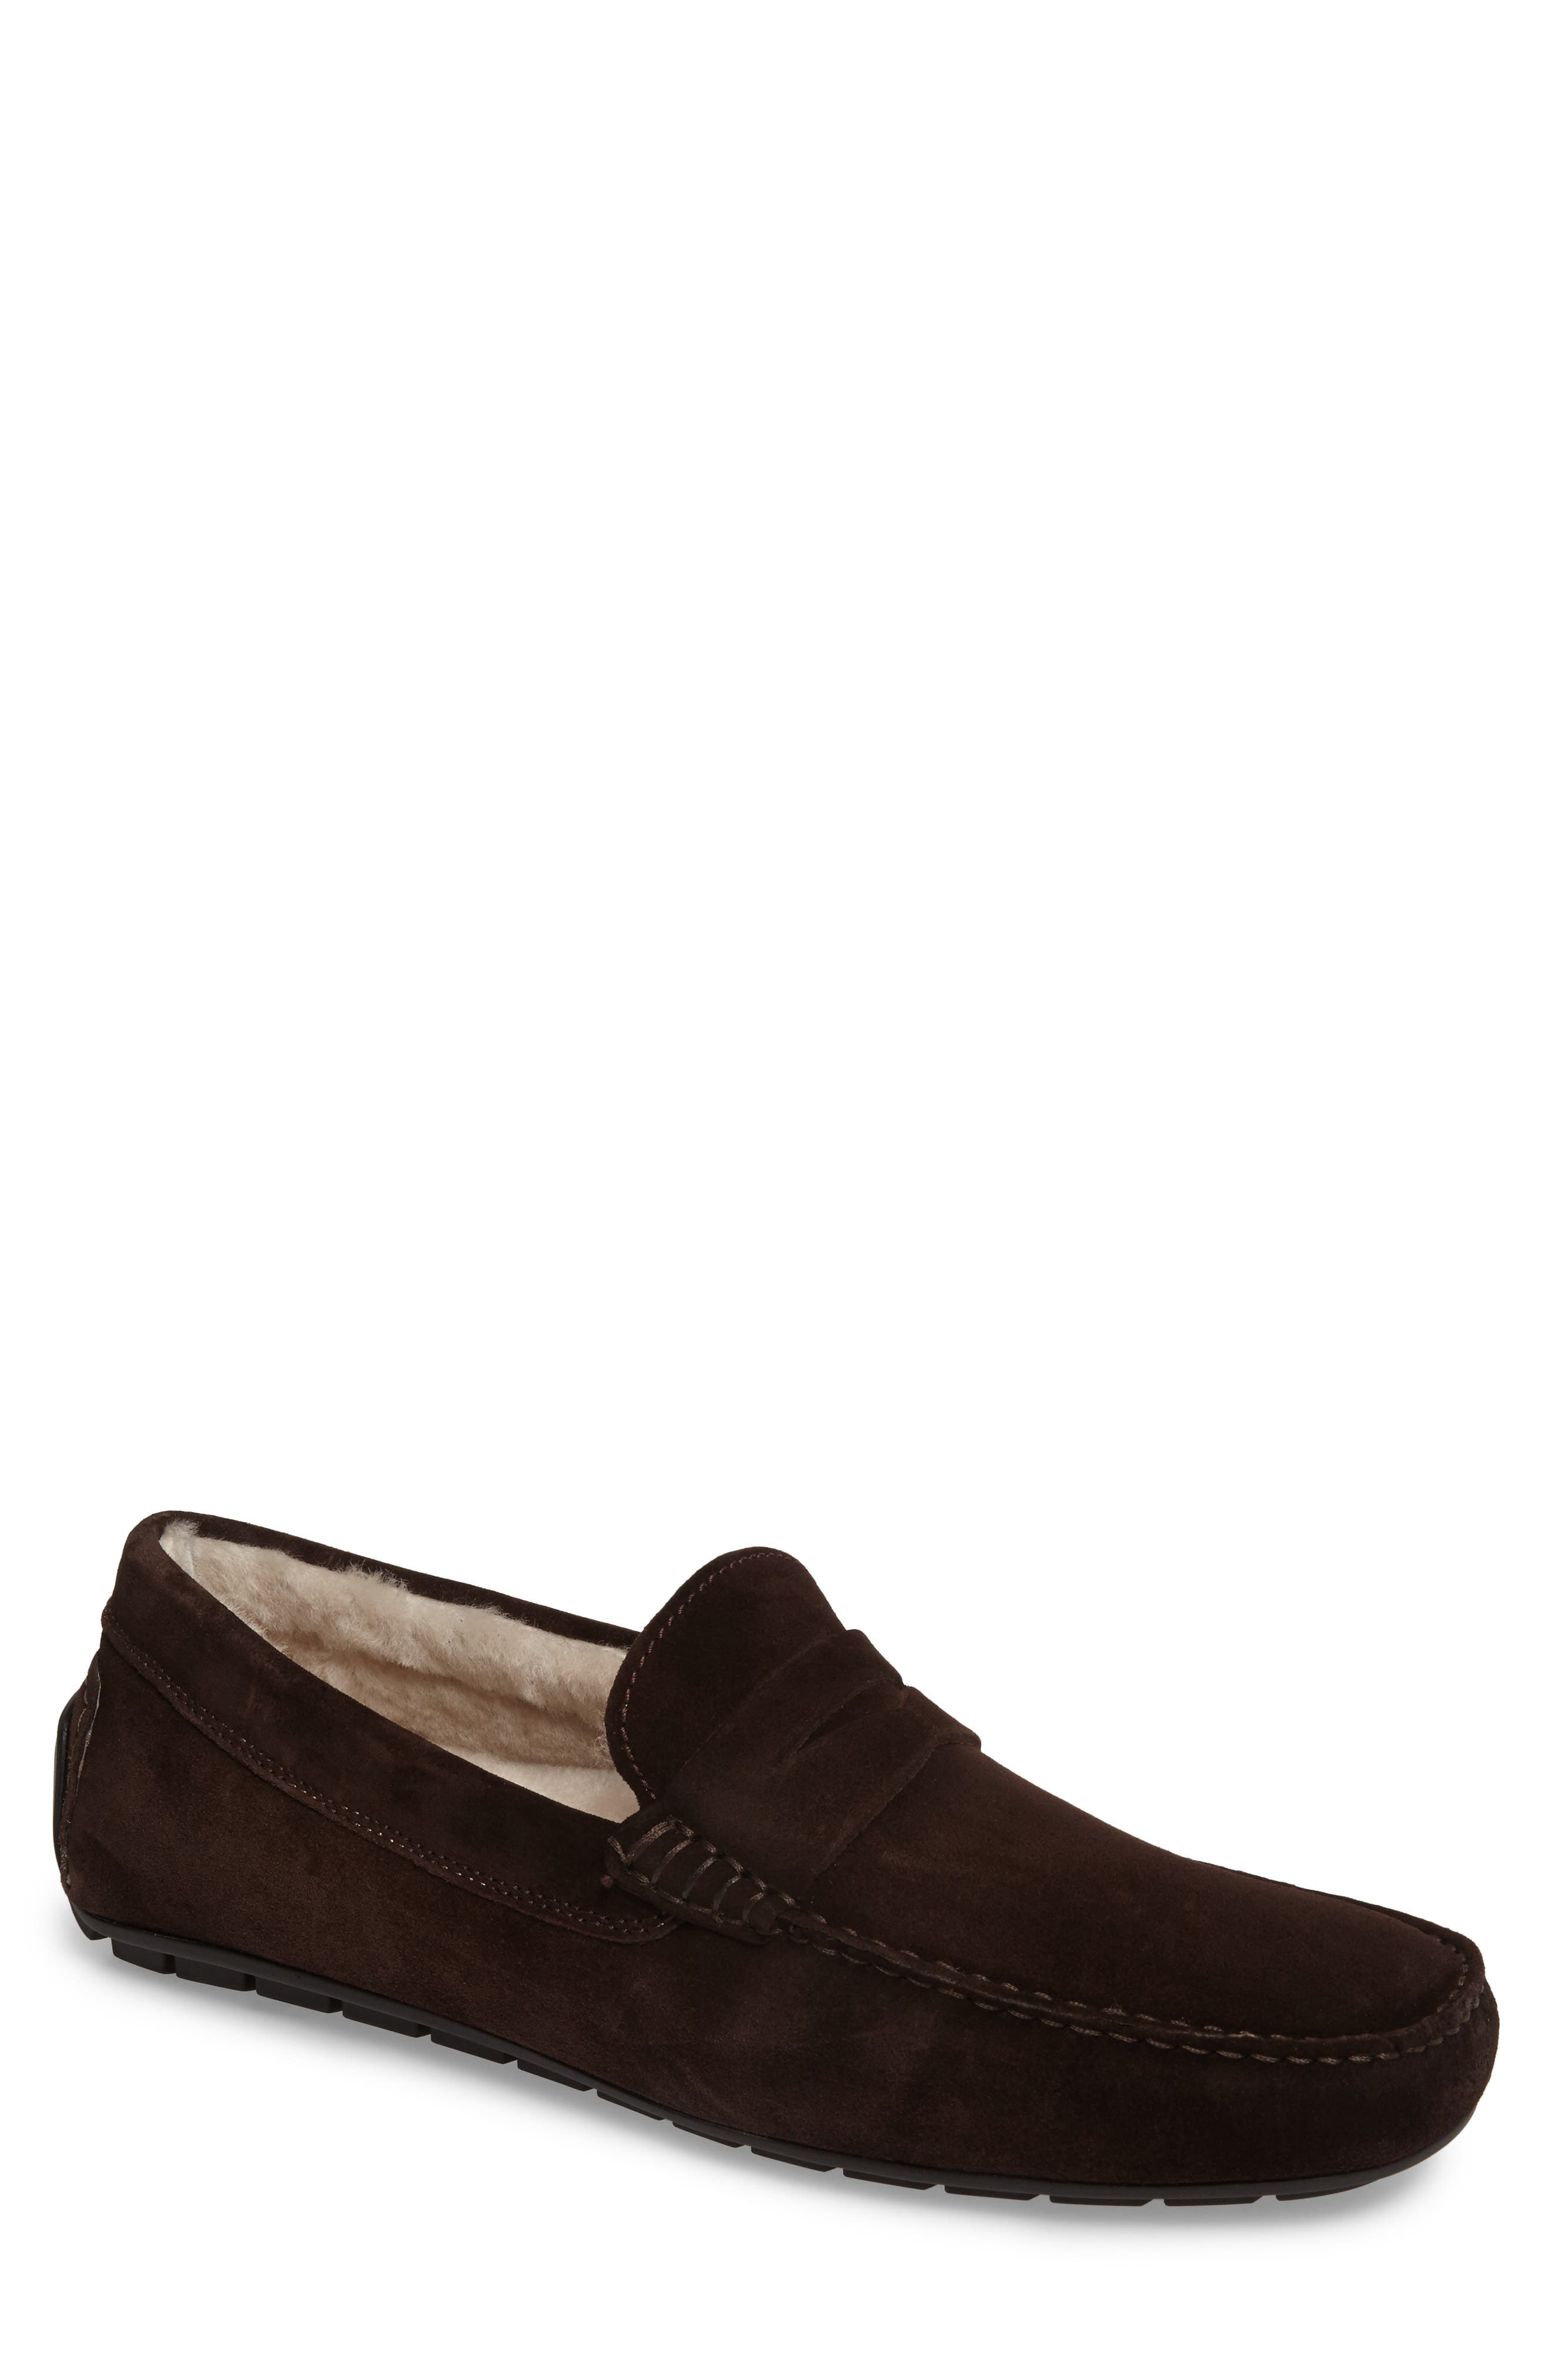 Norse Penny Loafer with Genuine Shearling,                             Main thumbnail 2, color,